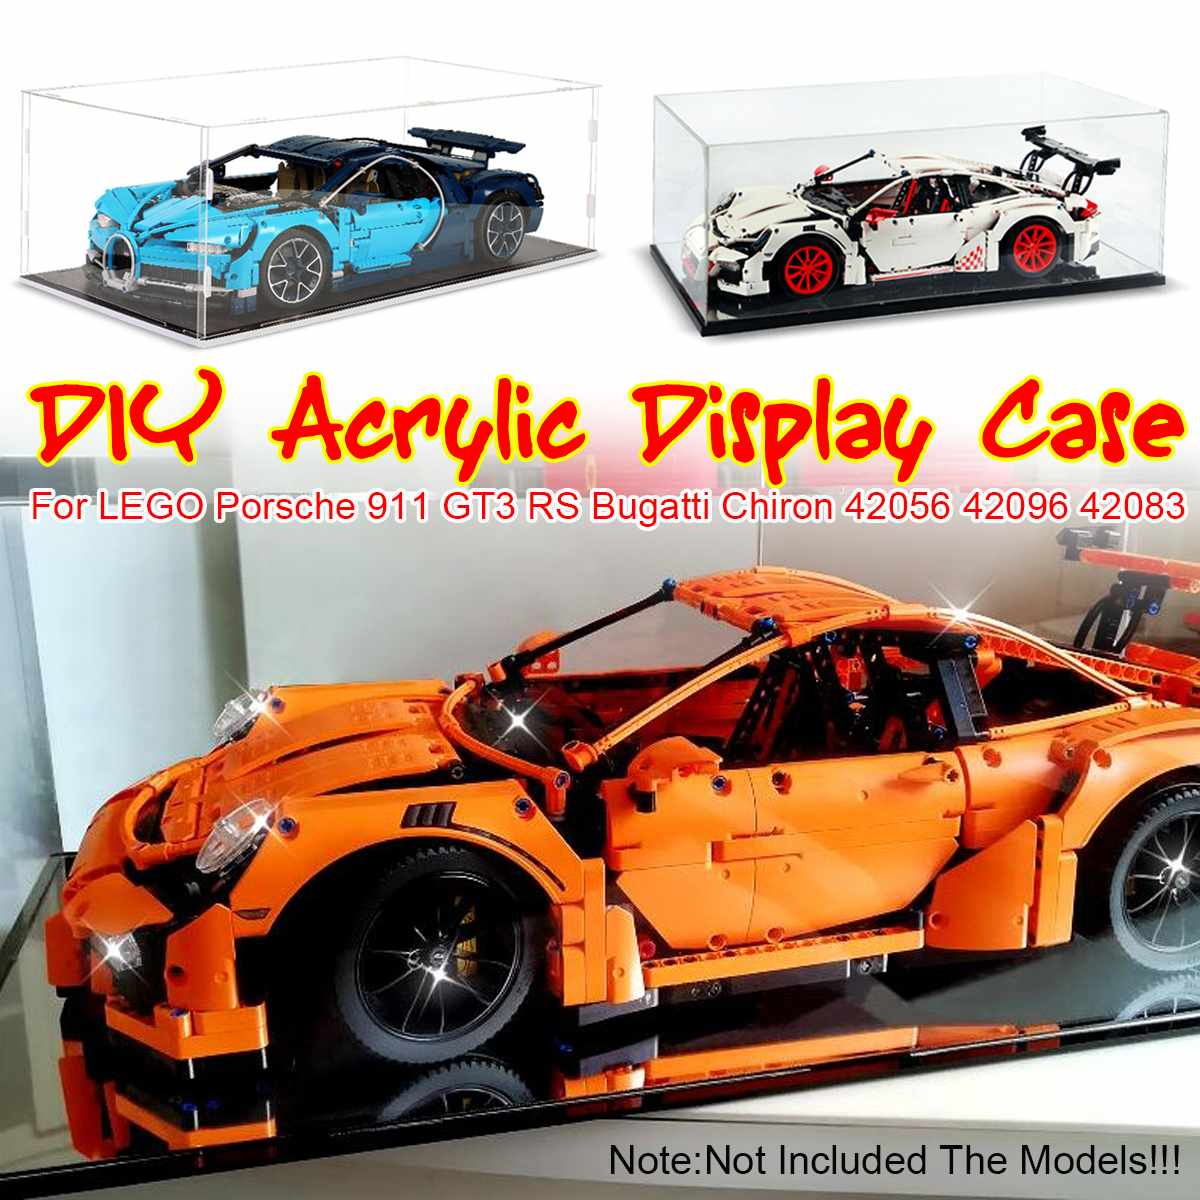 Acrylic Display Case for <font><b>Lego</b></font> <font><b>42056</b></font> for Bugatti Chiron for Porsche 911 GT3 RS <font><b>Technic</b></font> Series Toy Bricks ( Model not Included) image